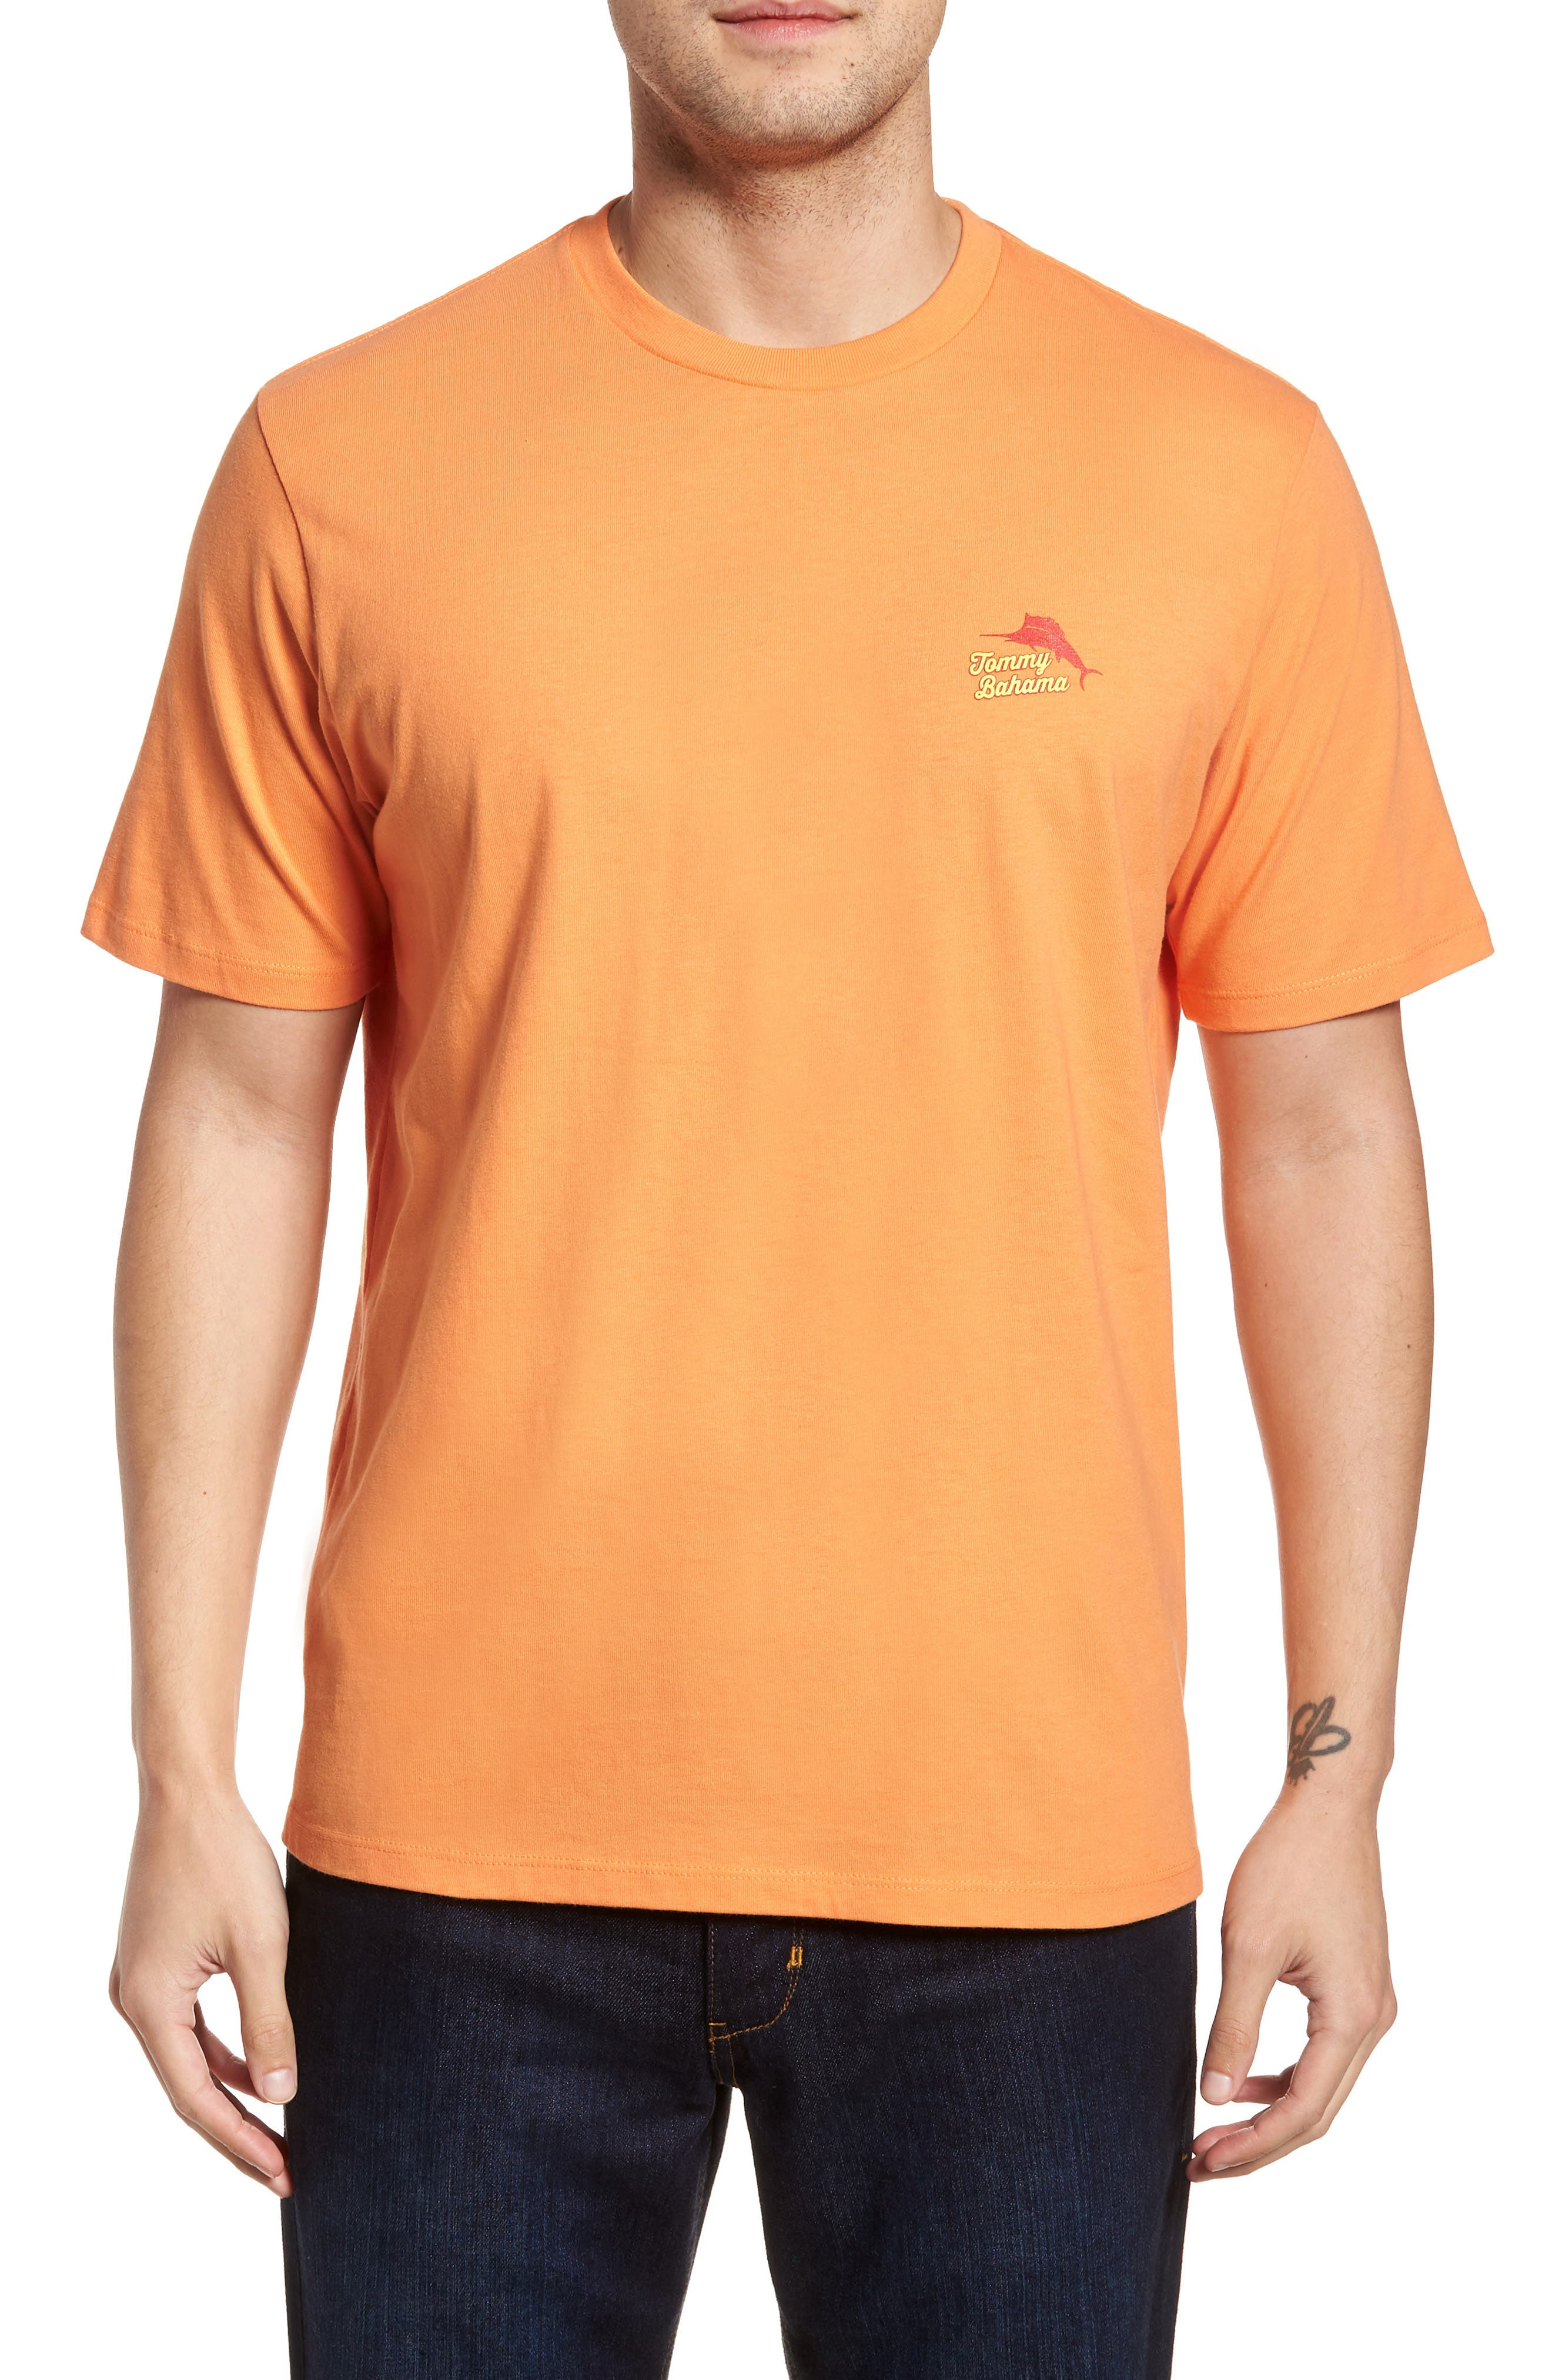 Ryes to the Occasion T-Shirt,                             Main thumbnail 1, color,                             Bright Apricot